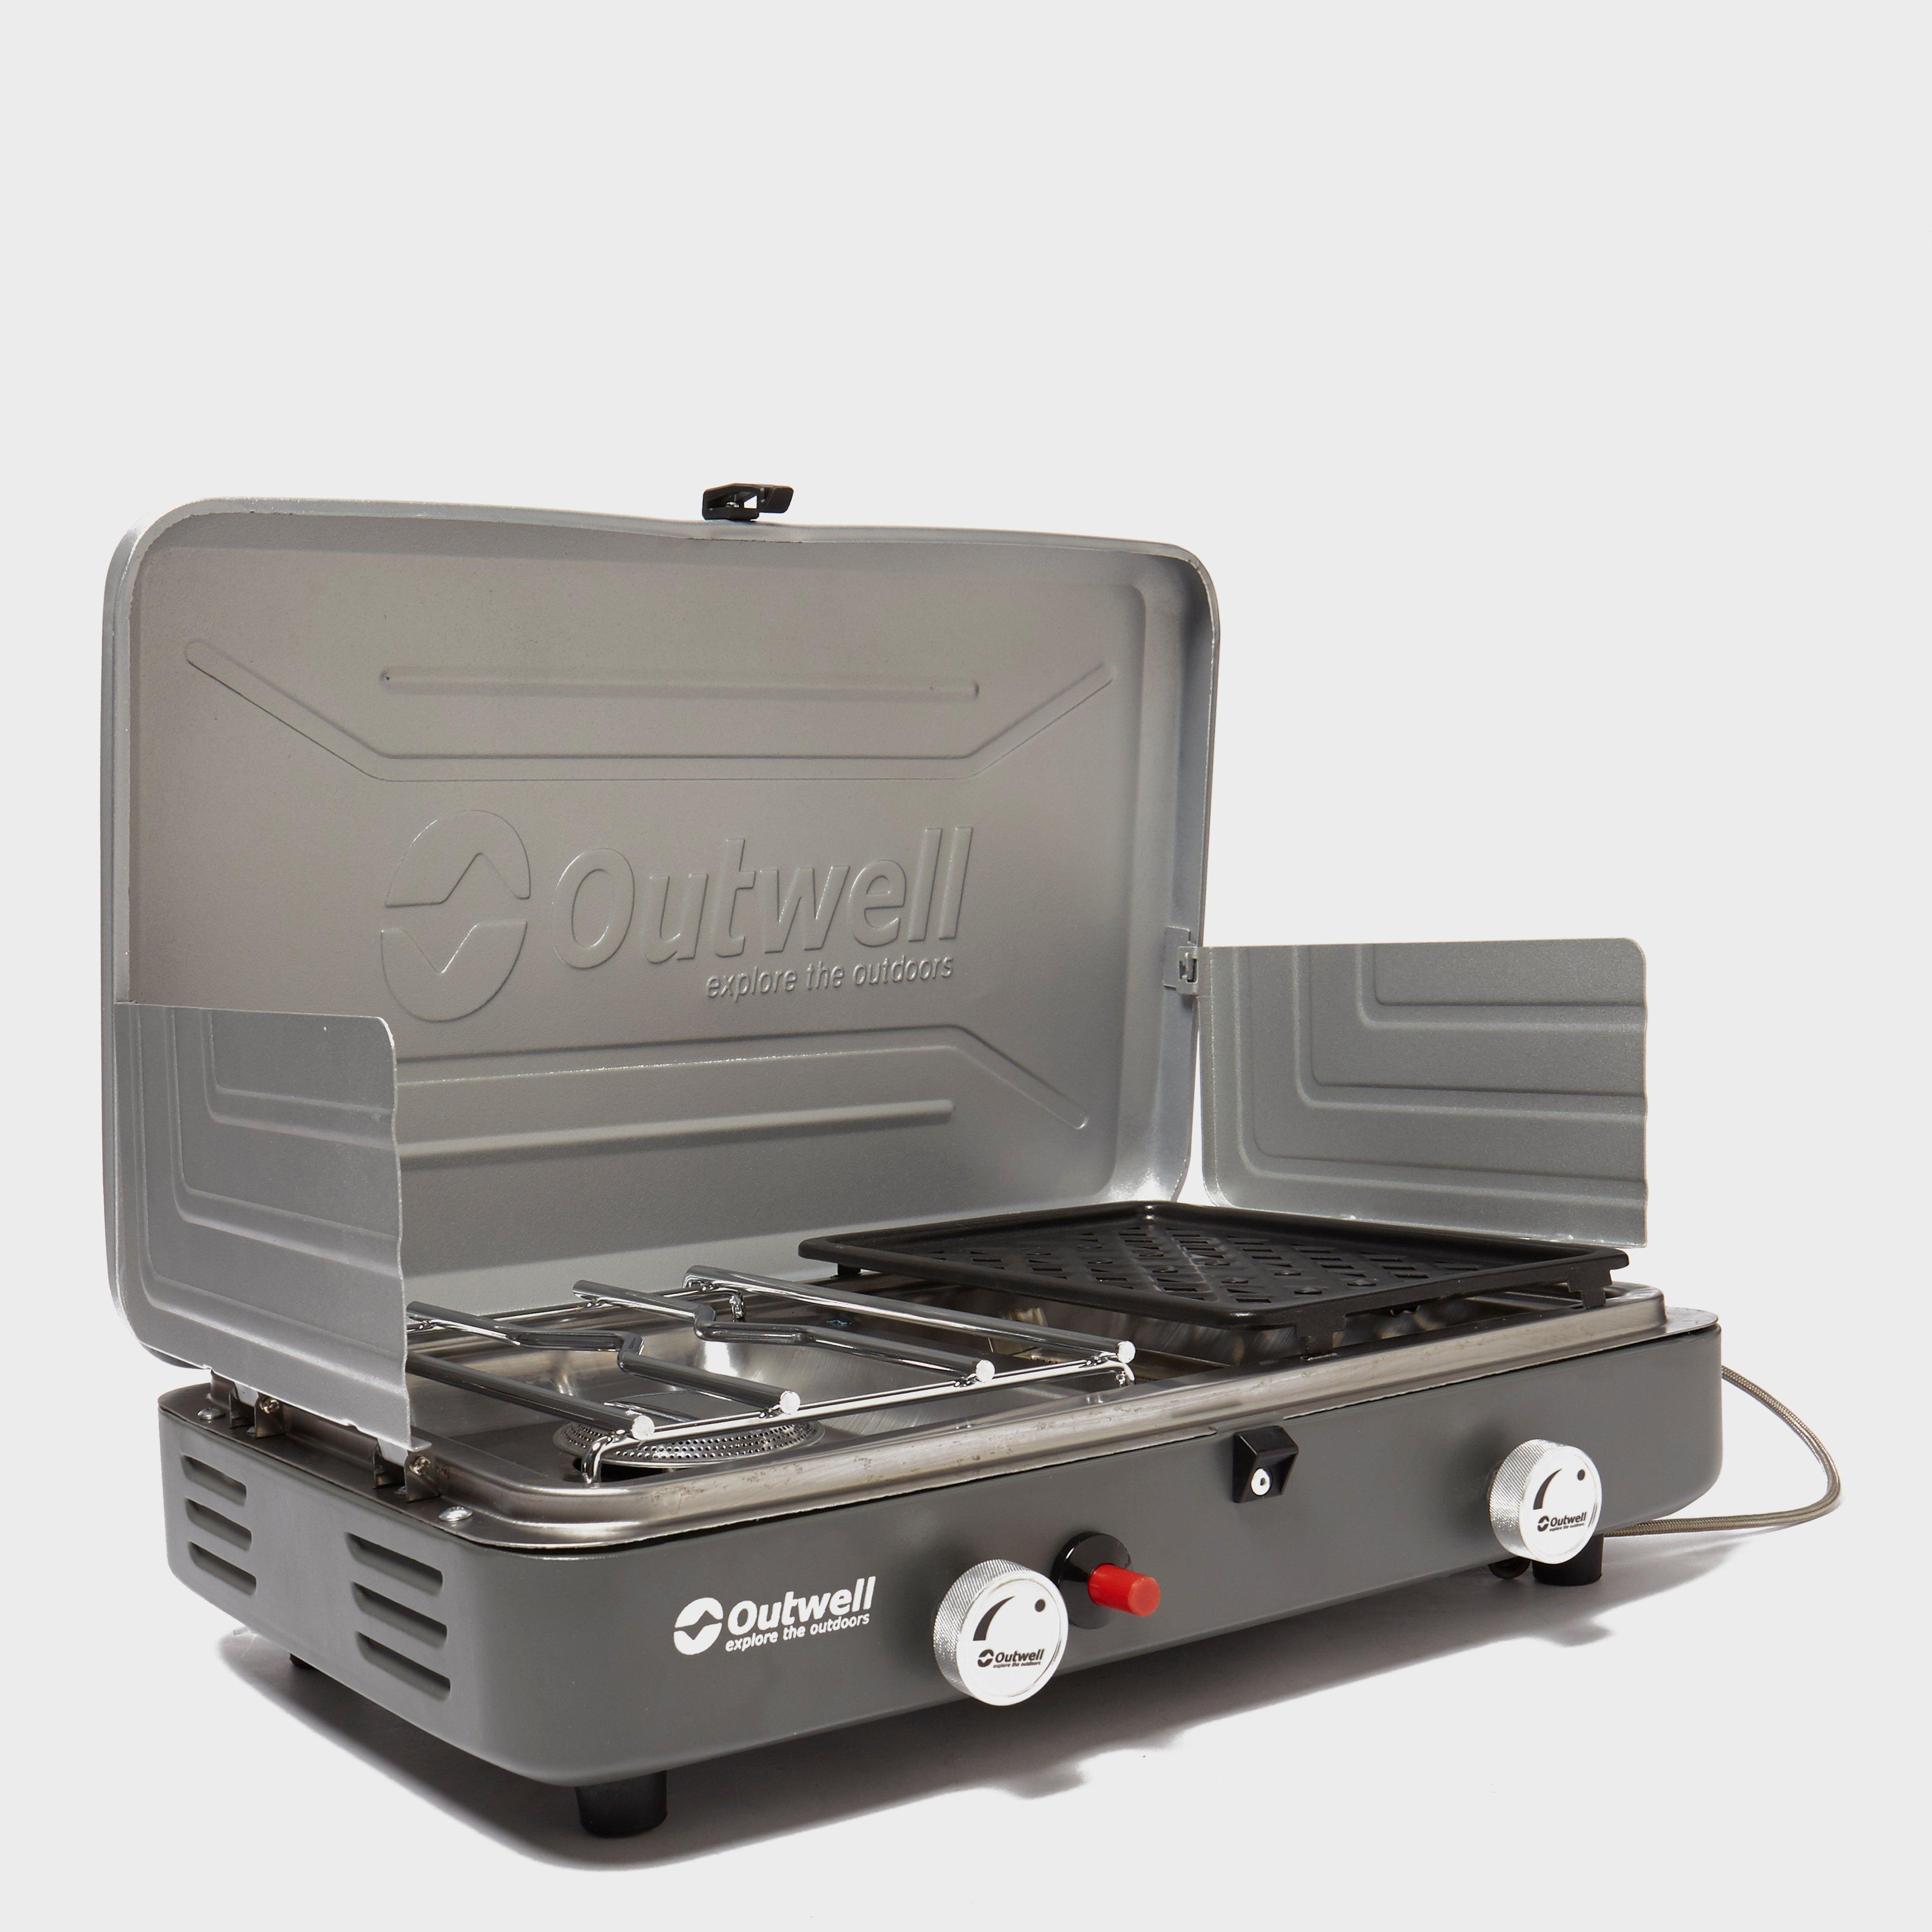 Gas burner online shopping